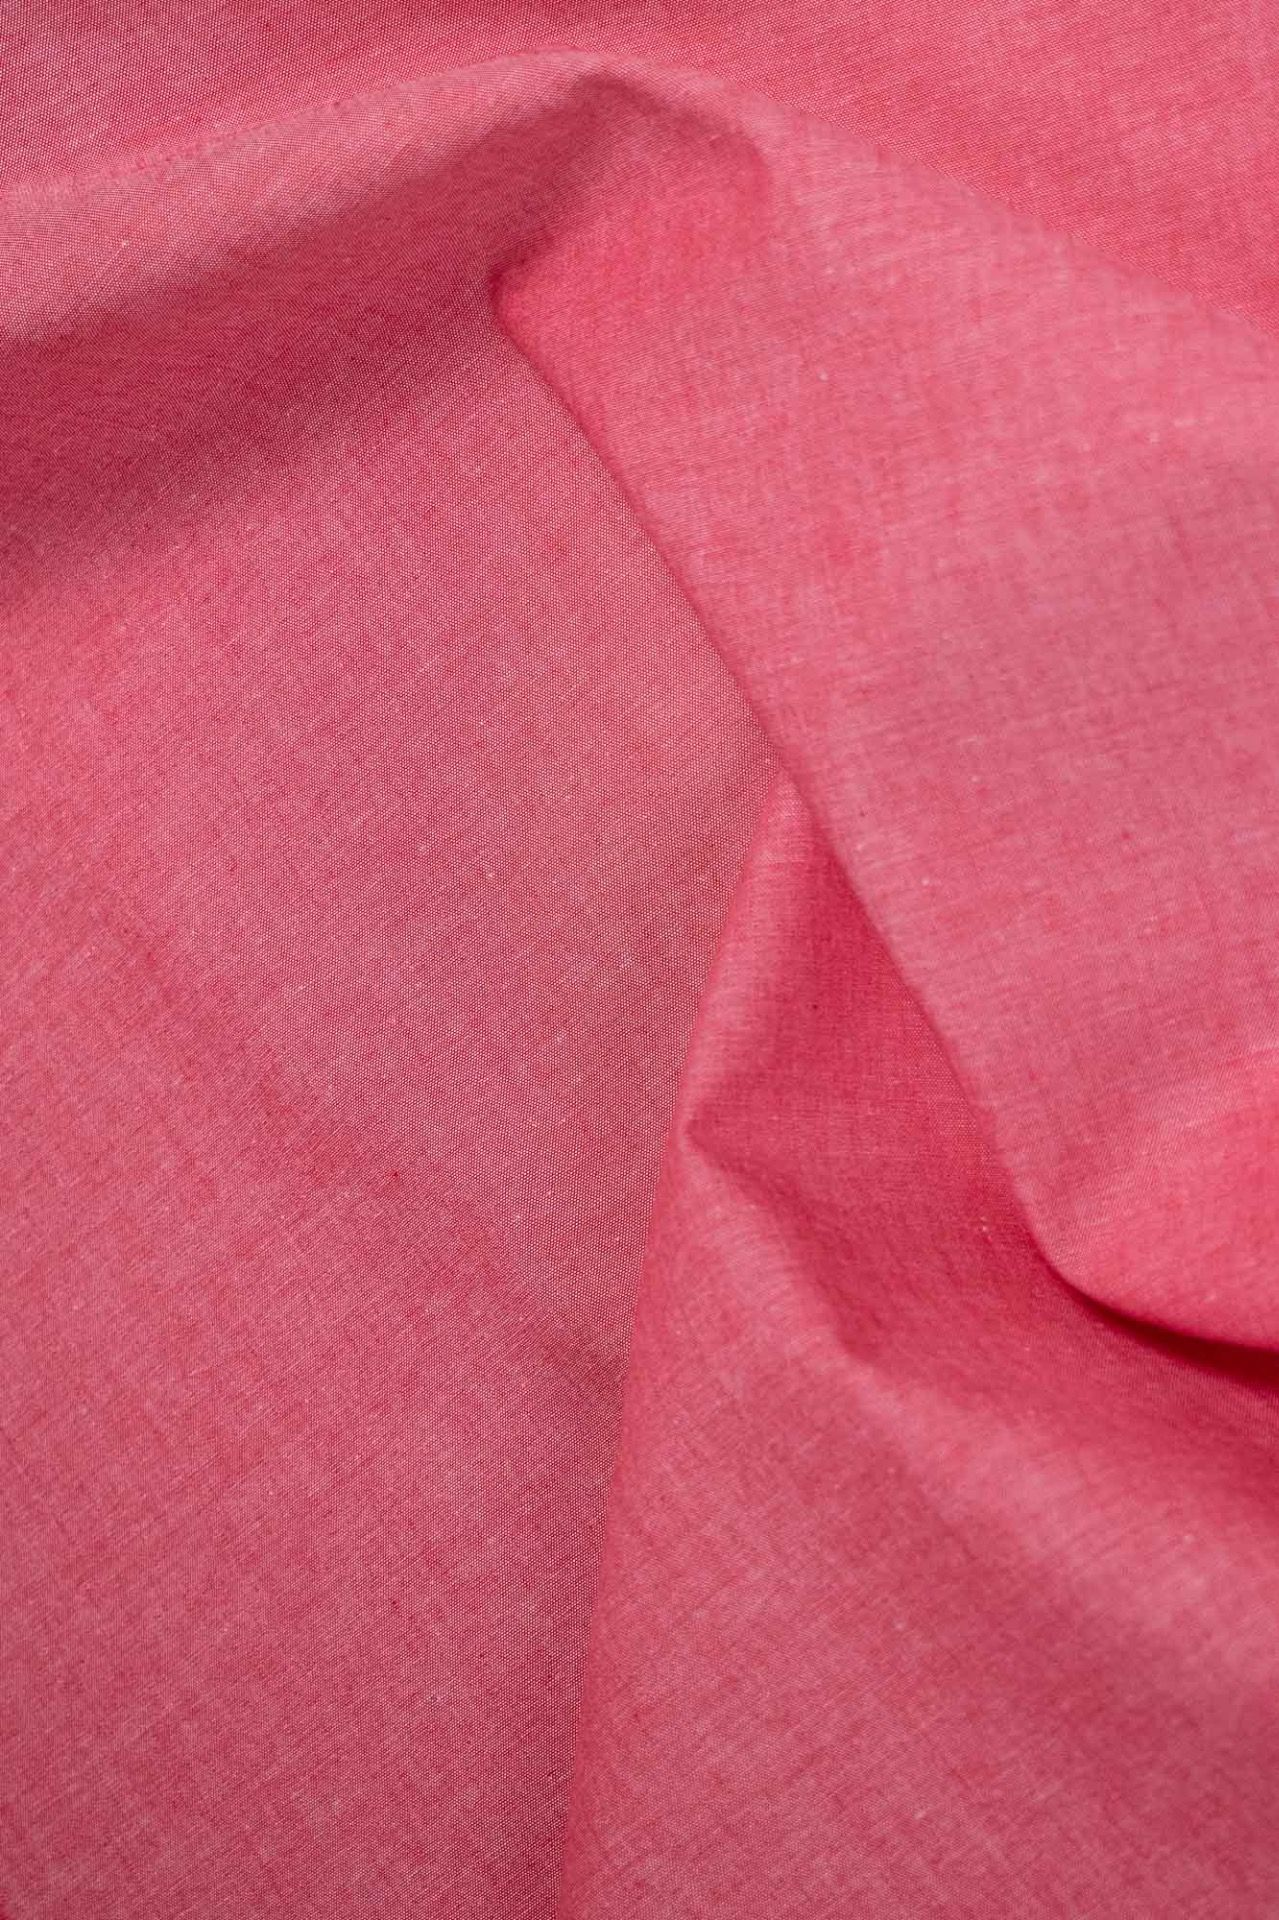 Cotton Chambray Fabric - Plain - Red